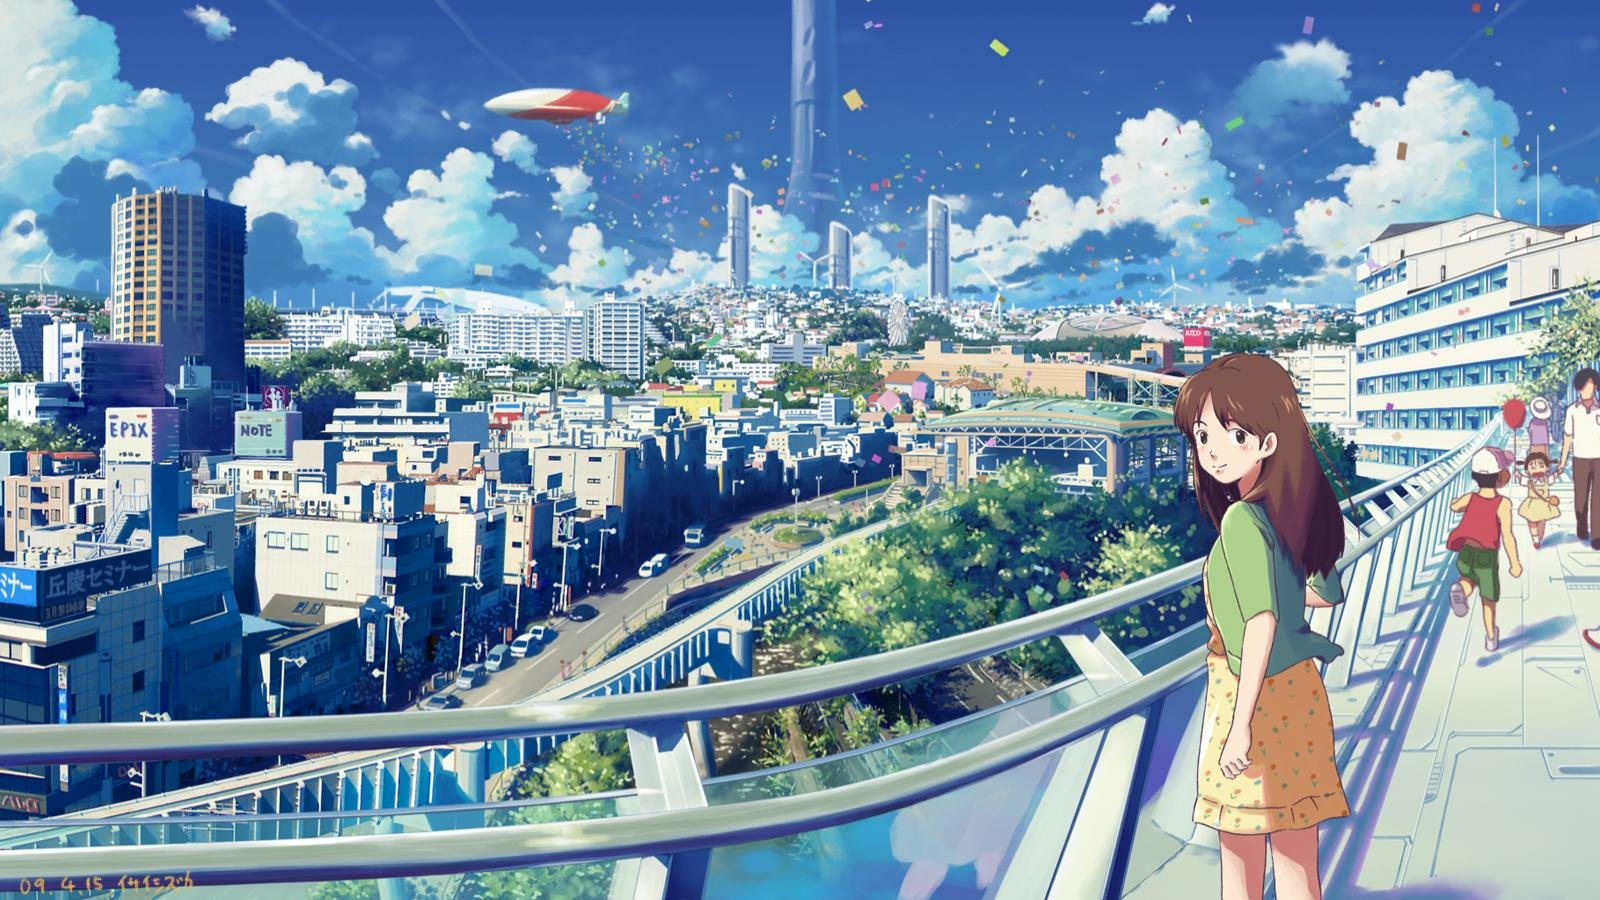 Download hd 1600x900 Anime city computer wallpaper ID:118694 for free